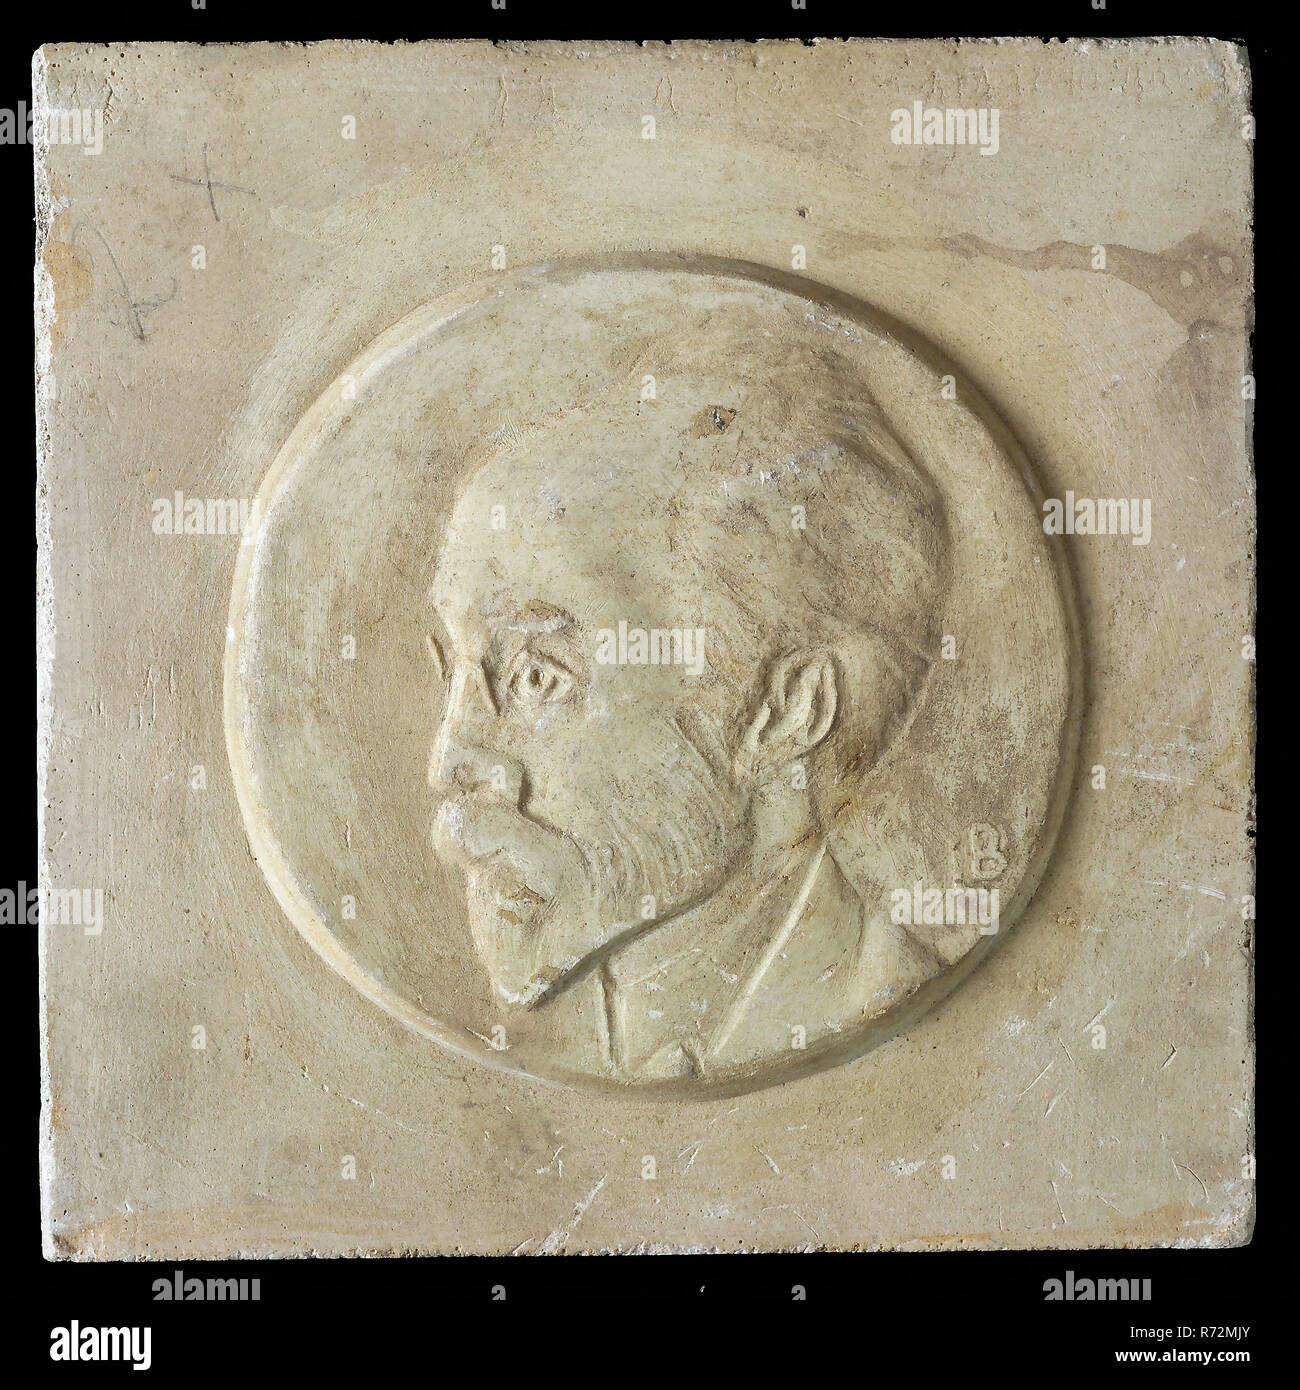 Leendert Bolle, Two halves of mold, respectively high and low relief, inside circle man's portrait with beard and mustache in profile, mold casting sculpture gypsum, signed LB Rotterdam - Stock Image